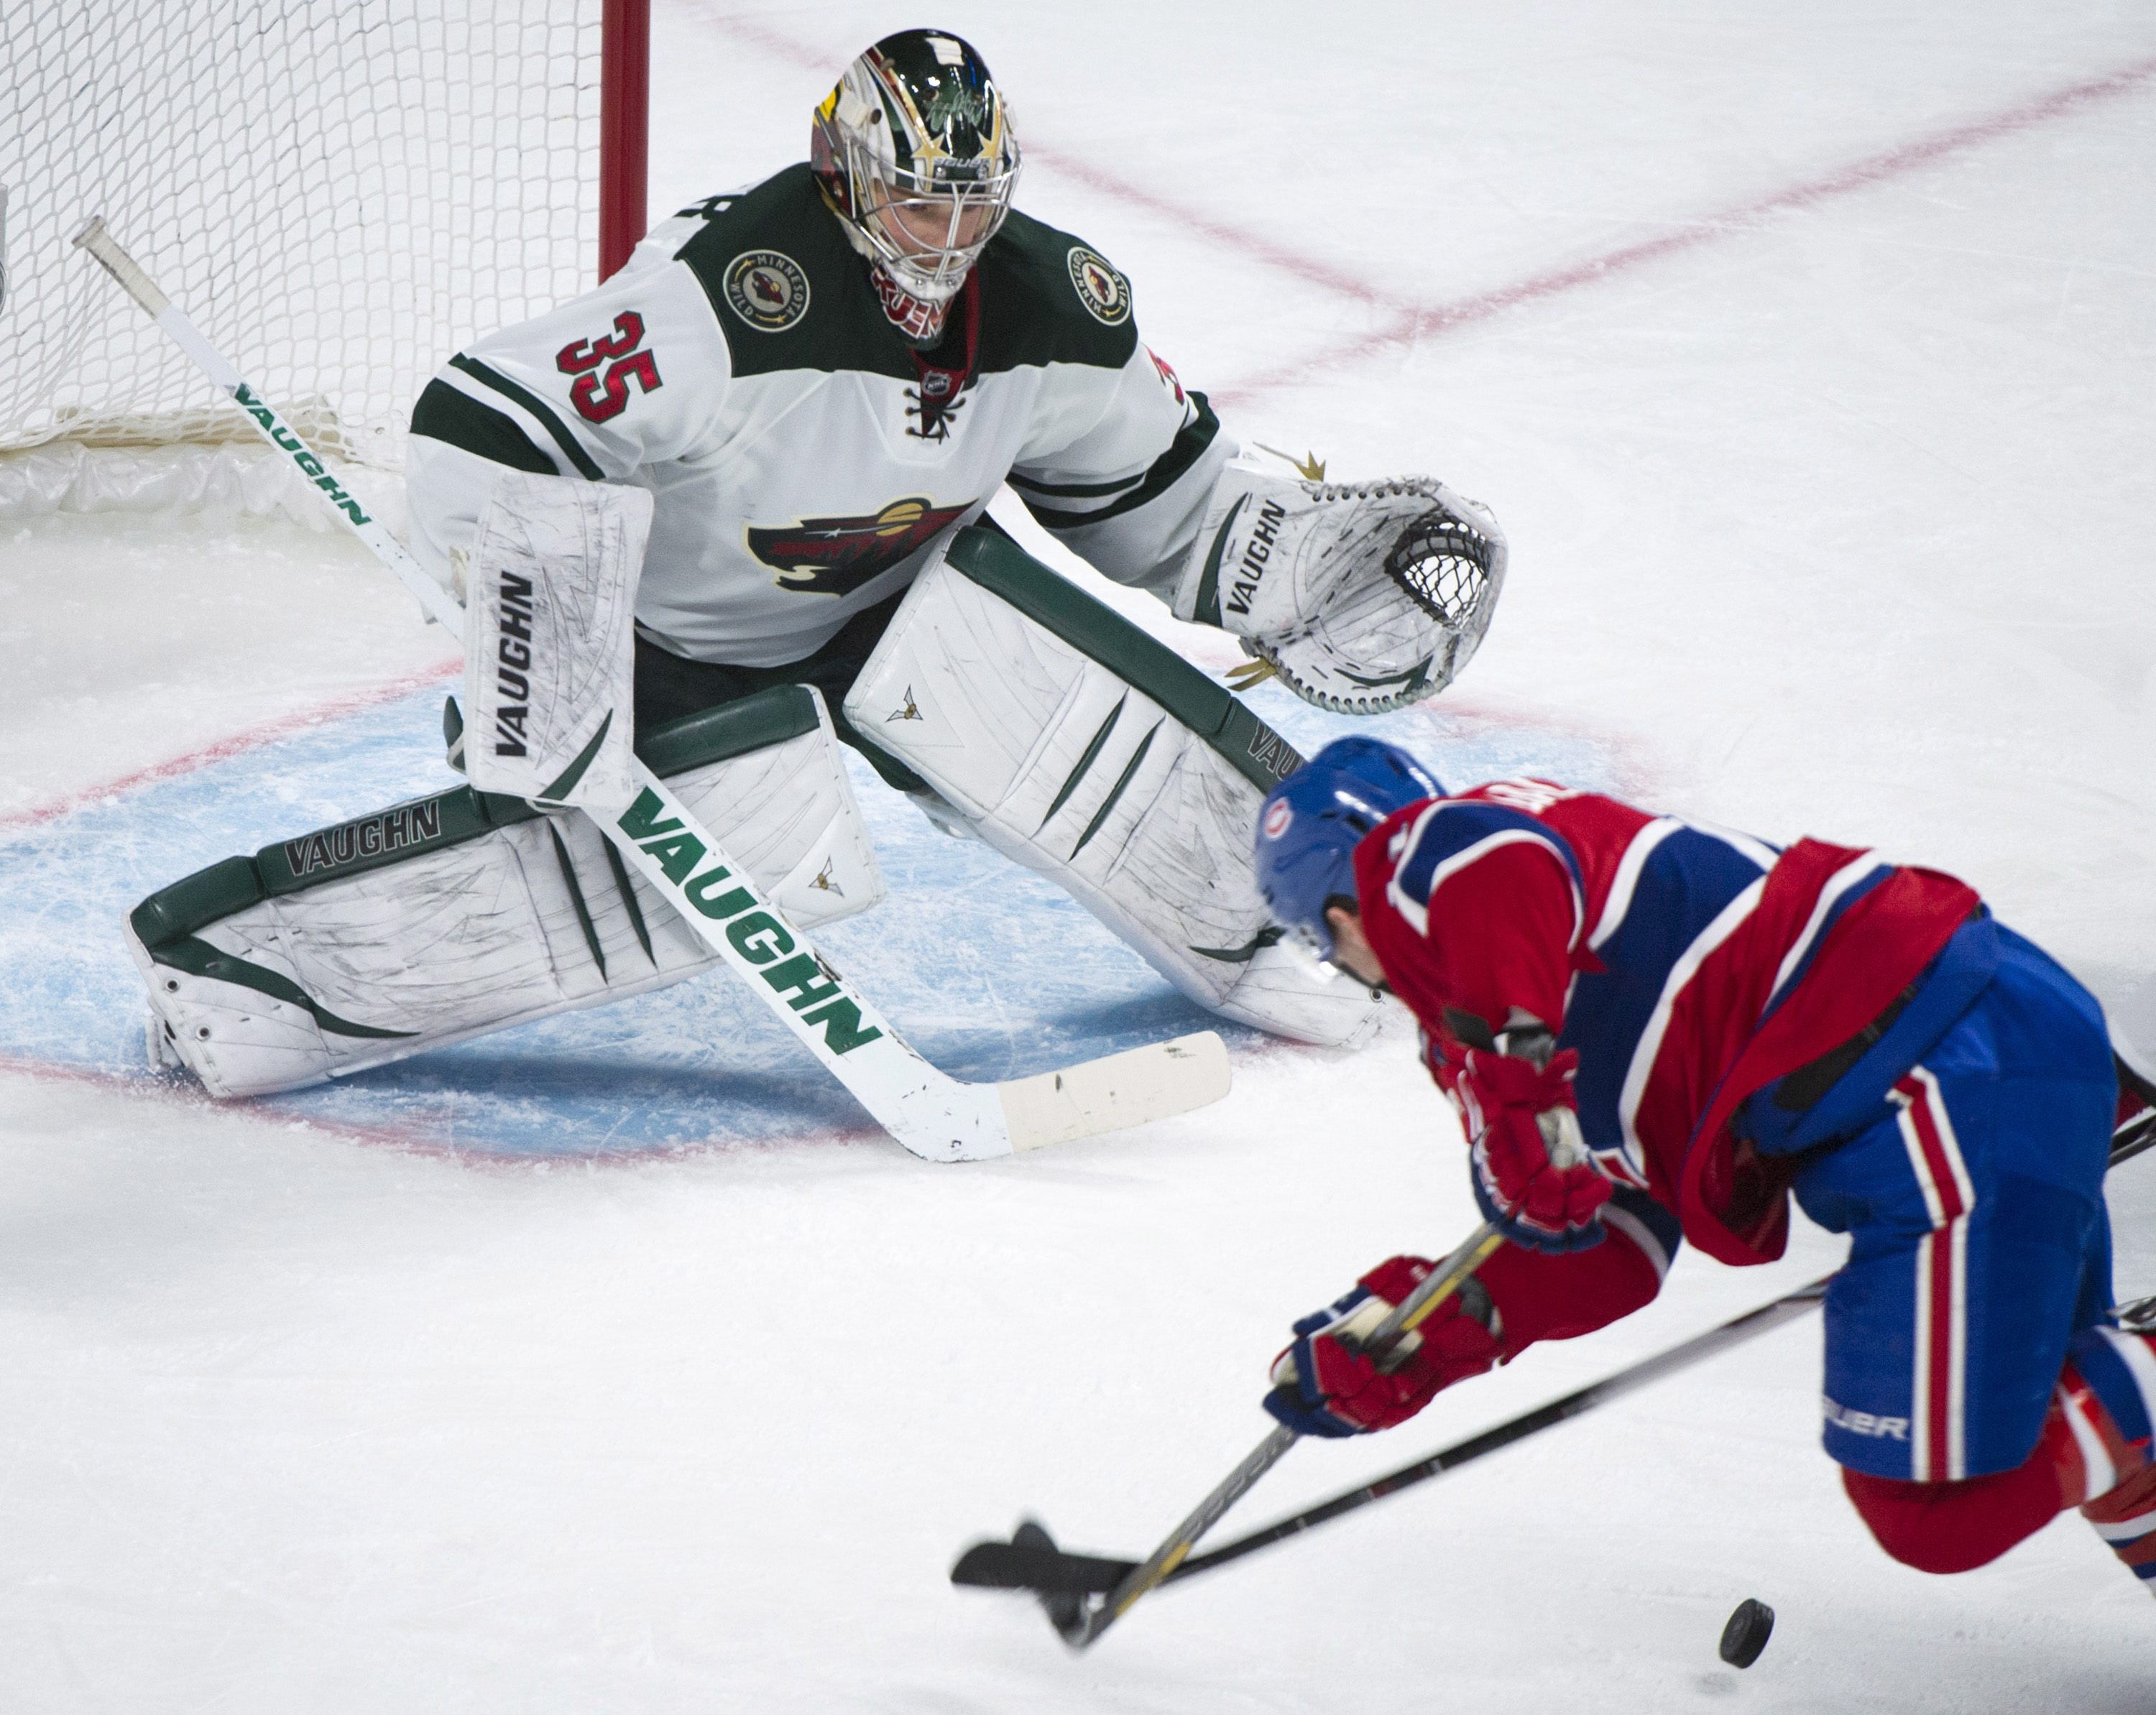 Montreal Canadiens' Brendan Gallagher trips as he moves in on Minnesota Wild's goaltender Darcy Kuemper, left, during the third period of an NHL hockey game Tuesday, Nov. 19, 2013 in Montreal